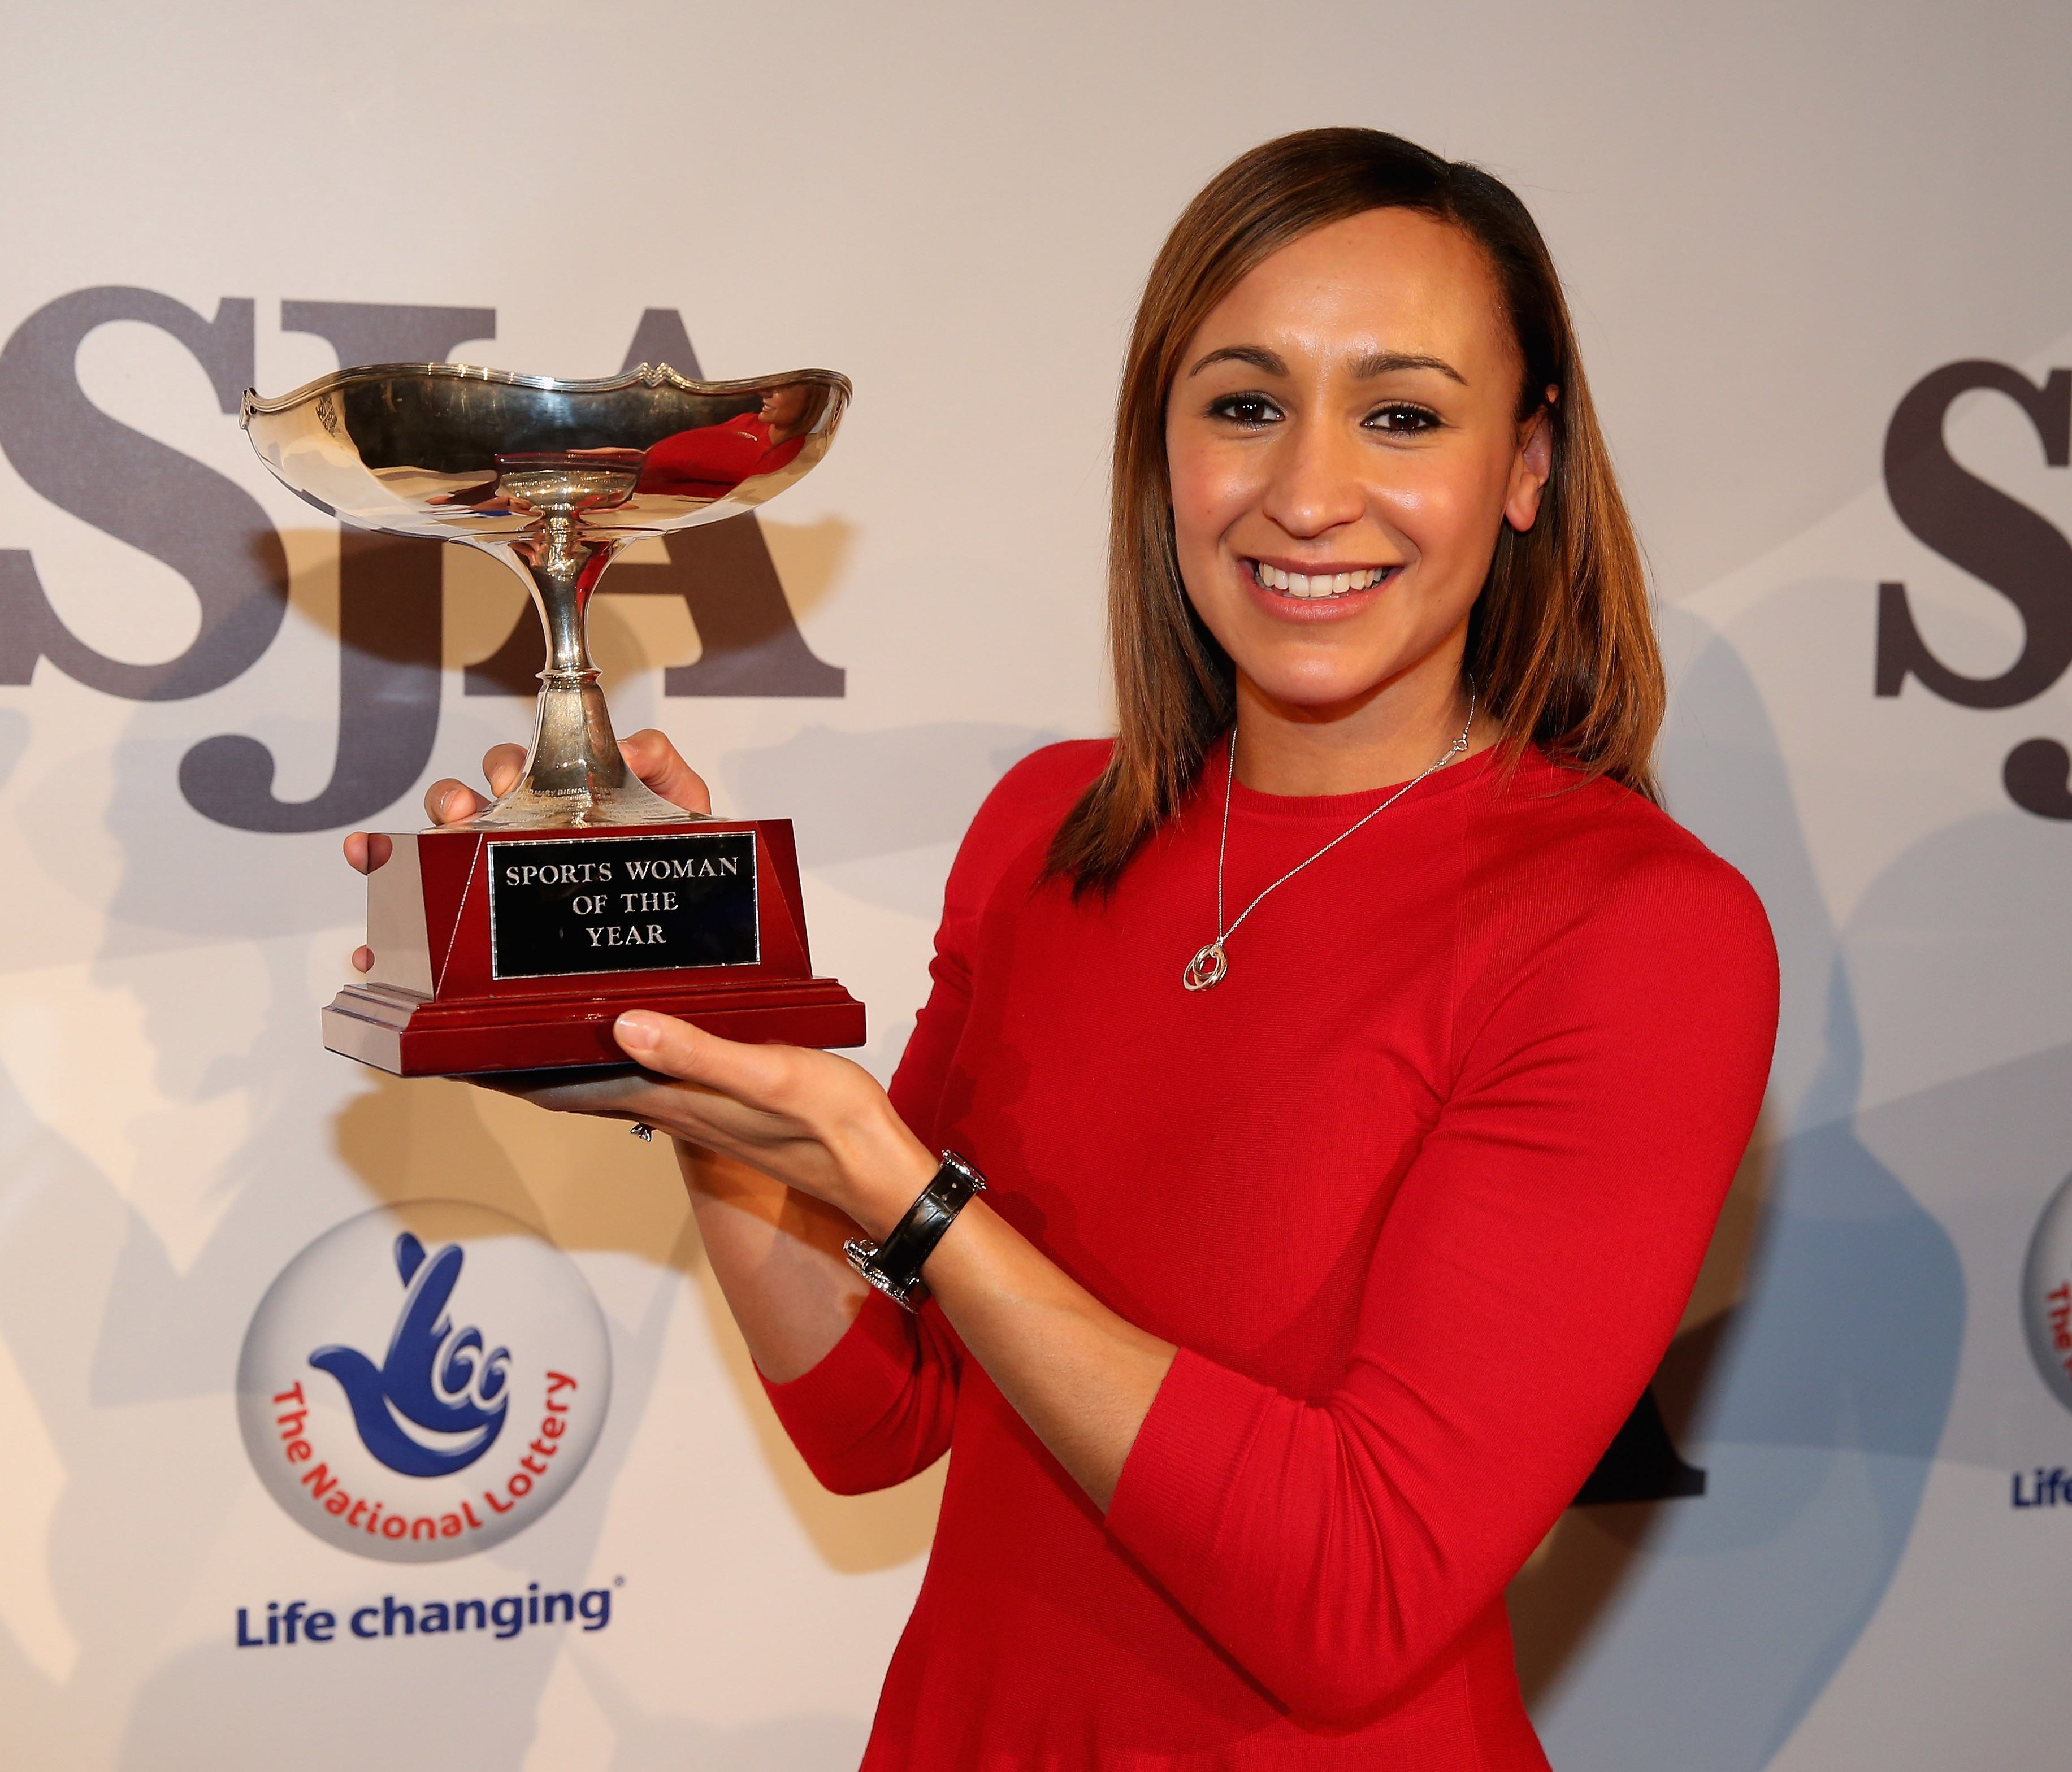 Jessica Ennis: SJA Sportswoman of the Year in 2012. Could she win again in 2015?